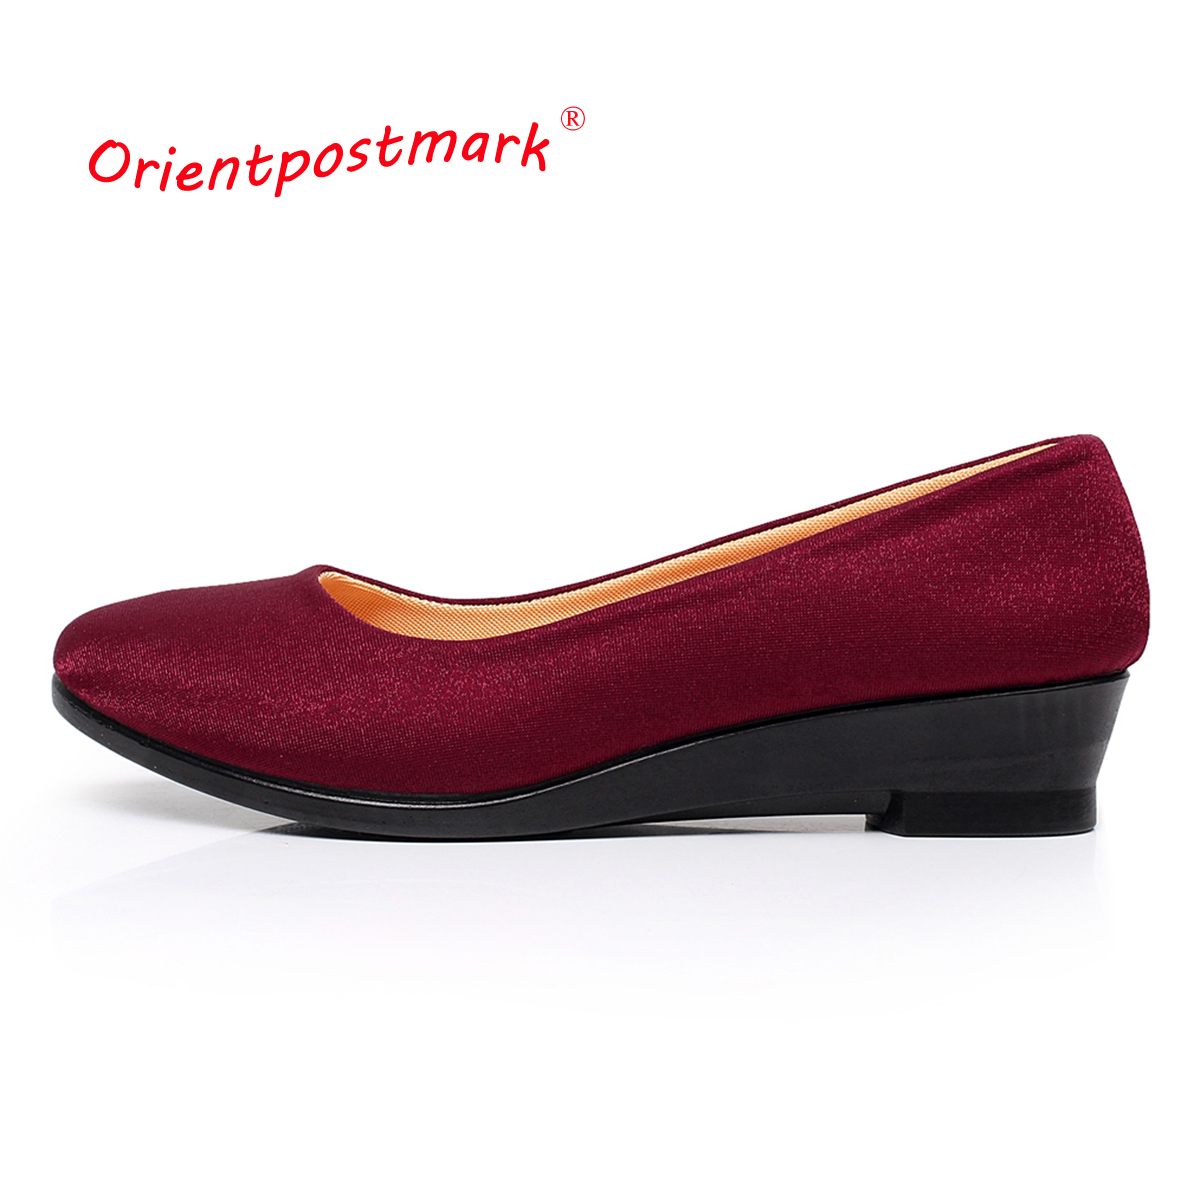 OrientPostMark Shoes For Work Cloth Sweet Loafers Wedges